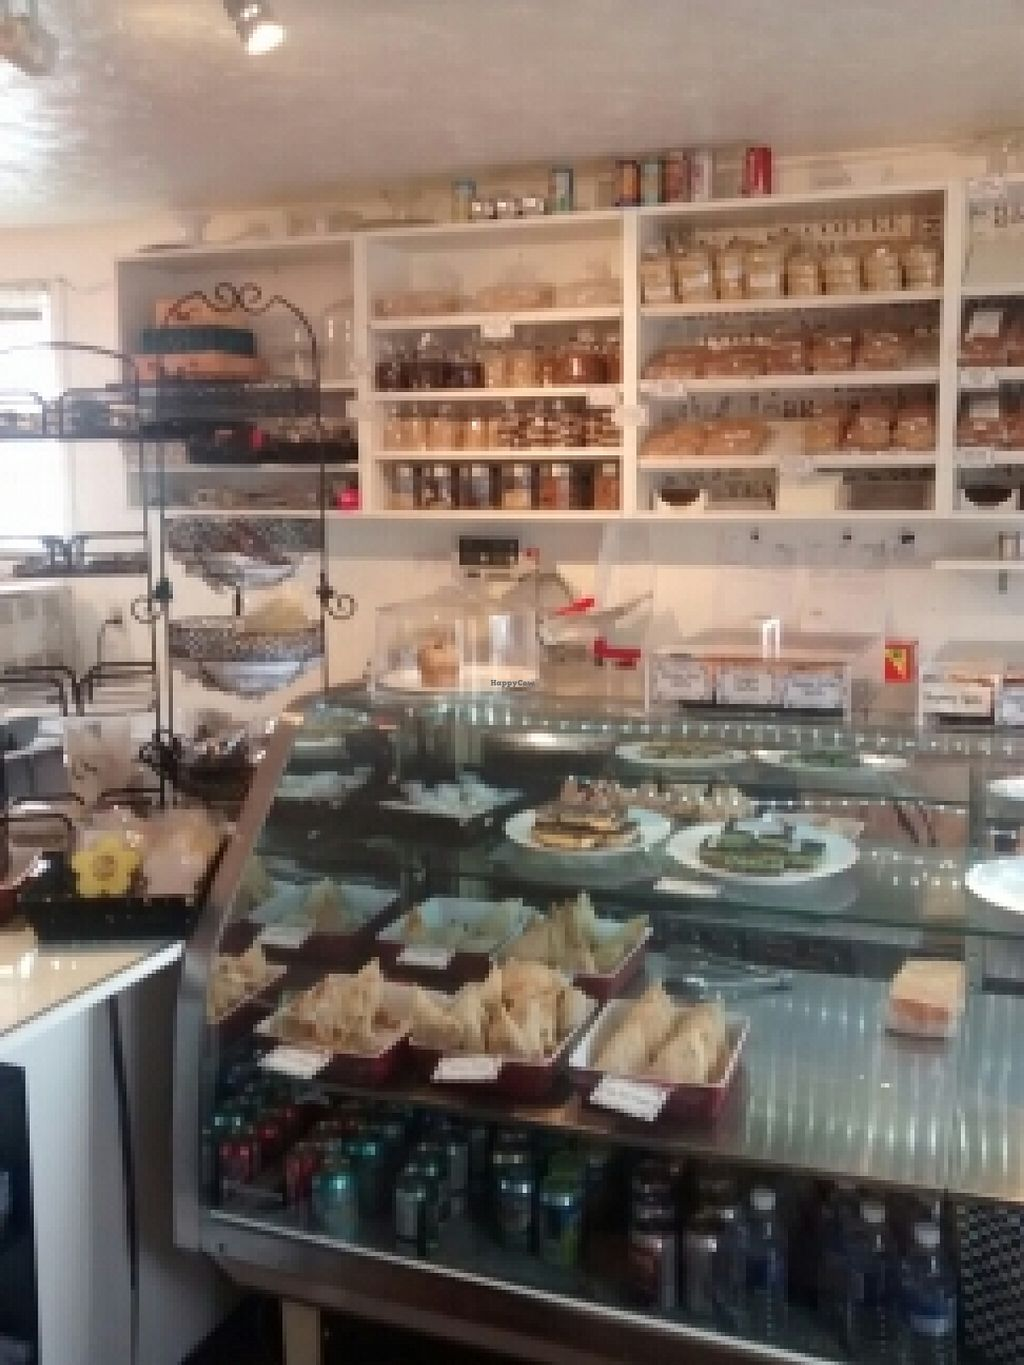 """Photo of Odell's Gluten Free Bakery  by <a href=""""/members/profile/QuothTheRaven"""">QuothTheRaven</a> <br/>lots of vegan options <br/> April 12, 2016  - <a href='/contact/abuse/image/72258/144263'>Report</a>"""